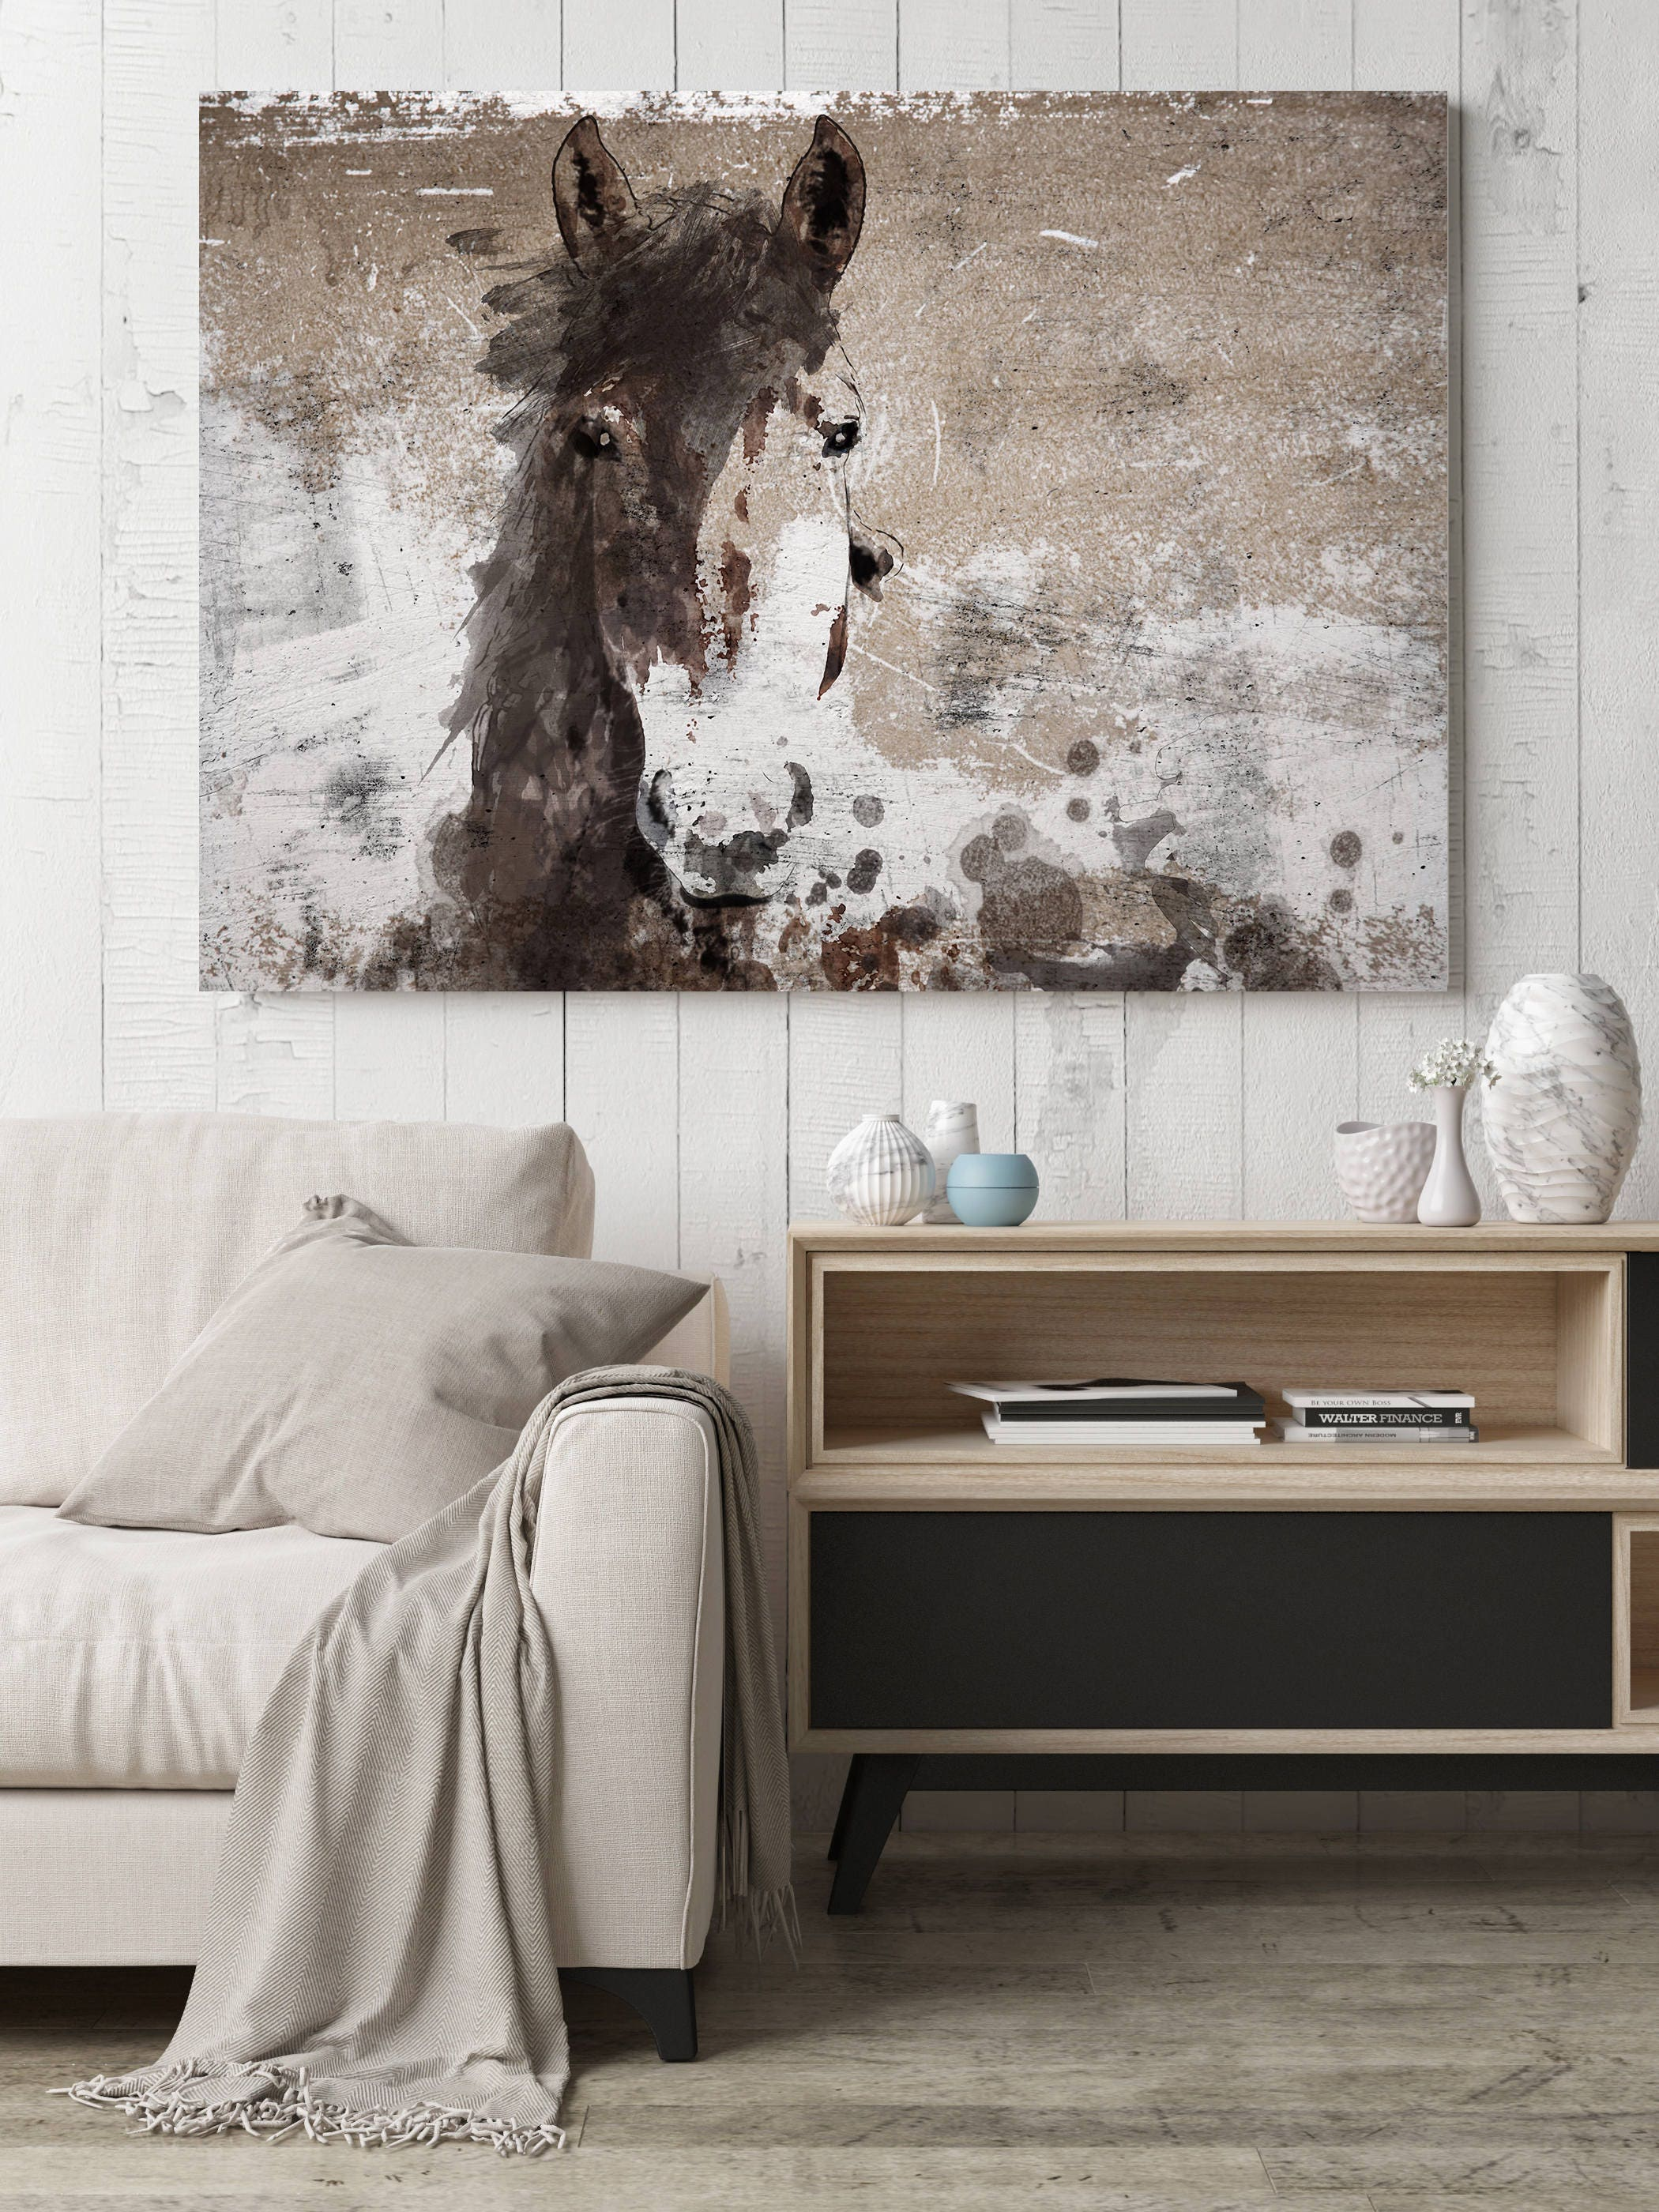 Large Farmhouse Wall Decor Dream Horse Extra Large Rustic Equine Wall Decor B On Inspiration Kitchen Pleasureable White Cabinetry Set Also Blu